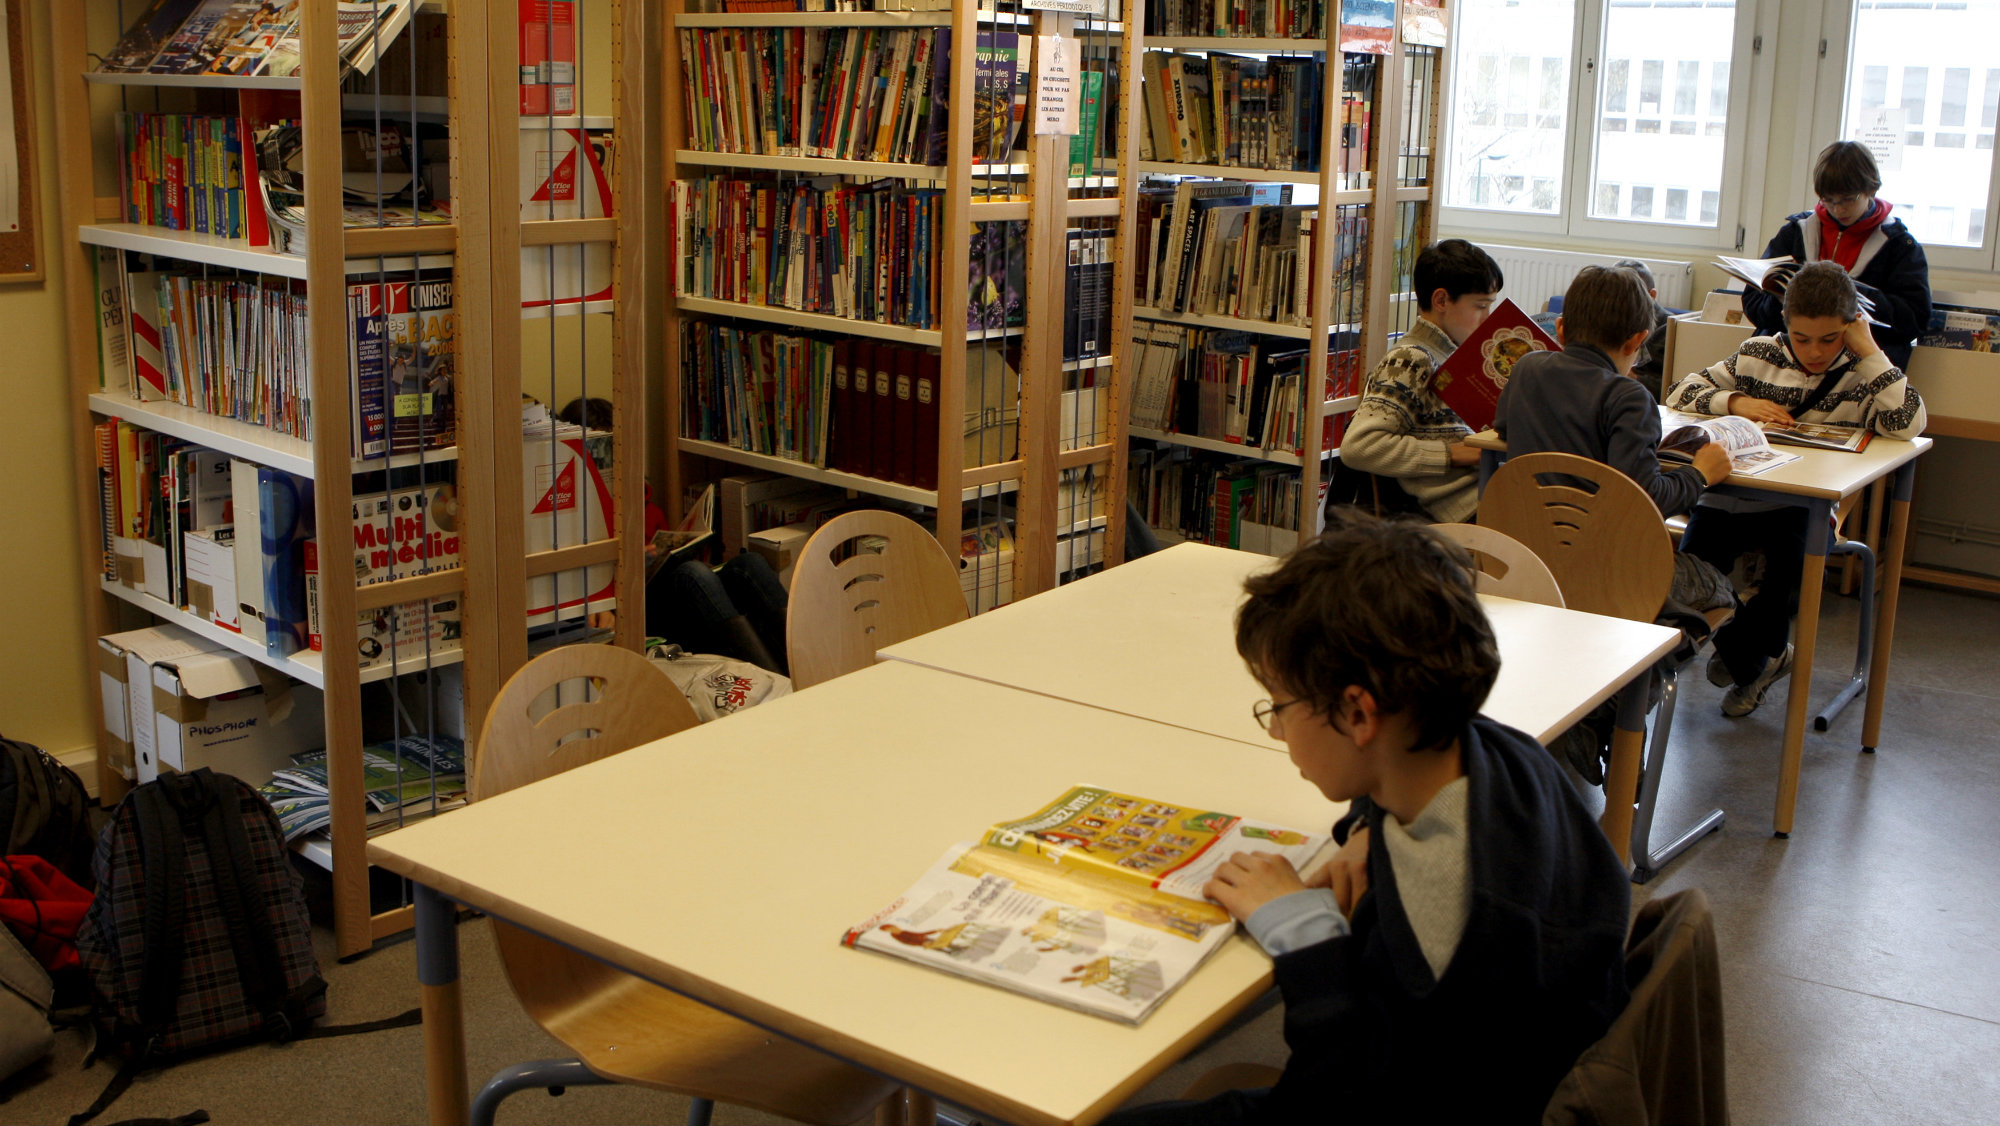 Children read books in the library of a school in Vincennes